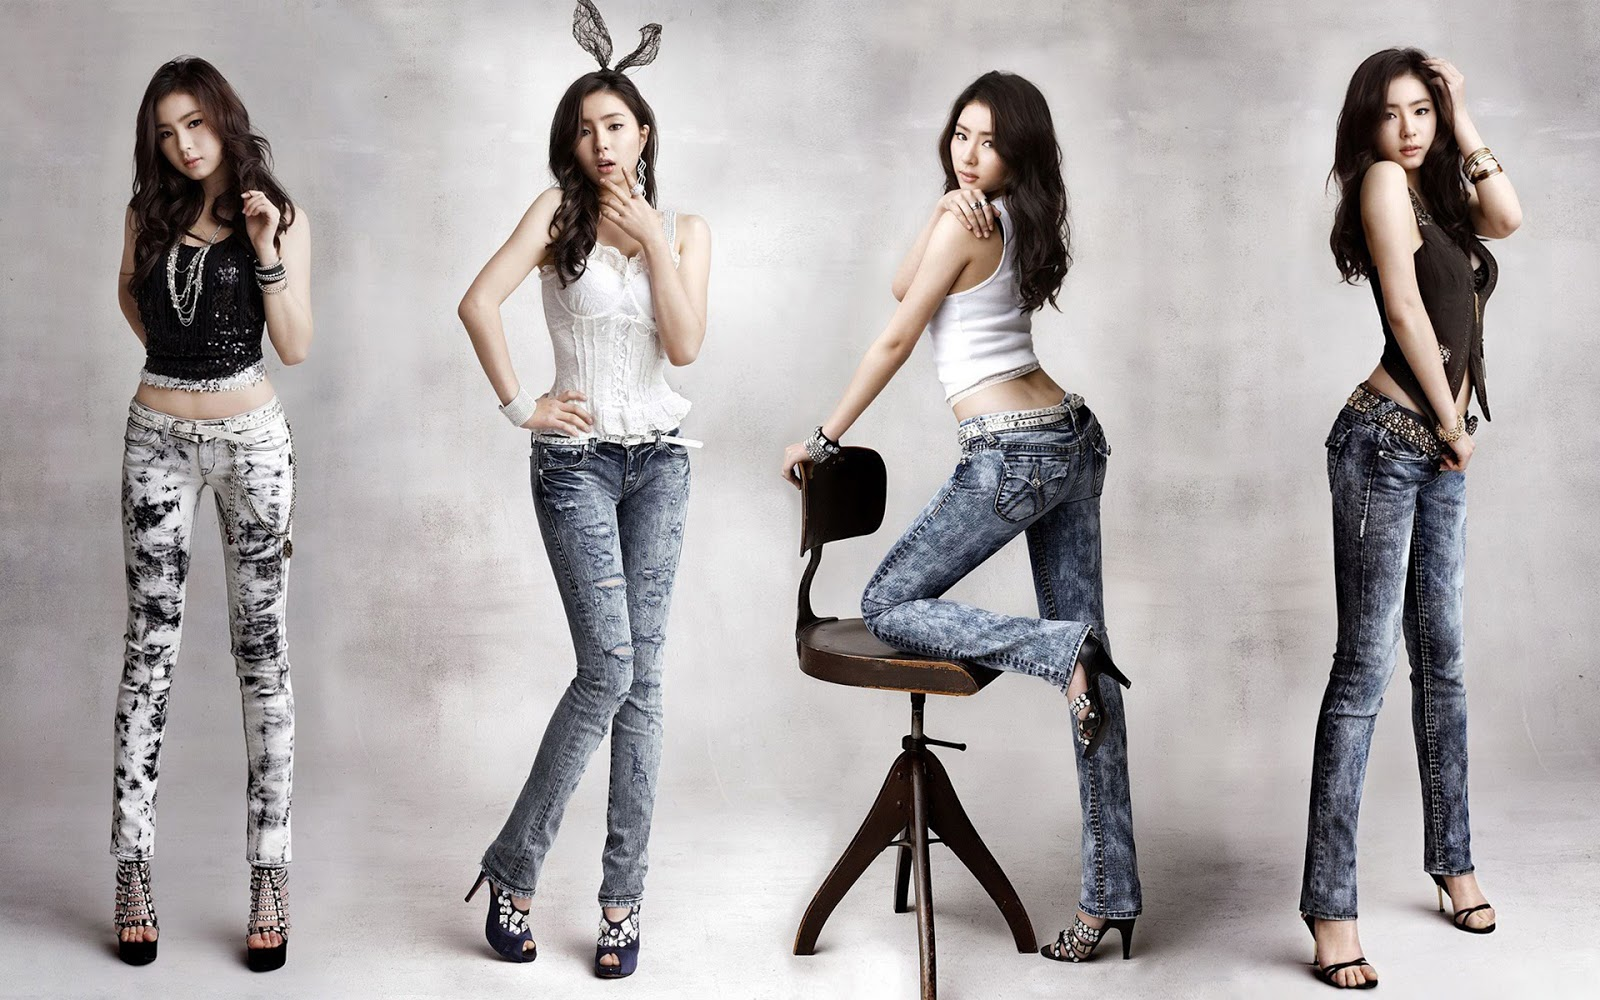 Shin Se-kyung Backgrounds on Wallpapers Vista